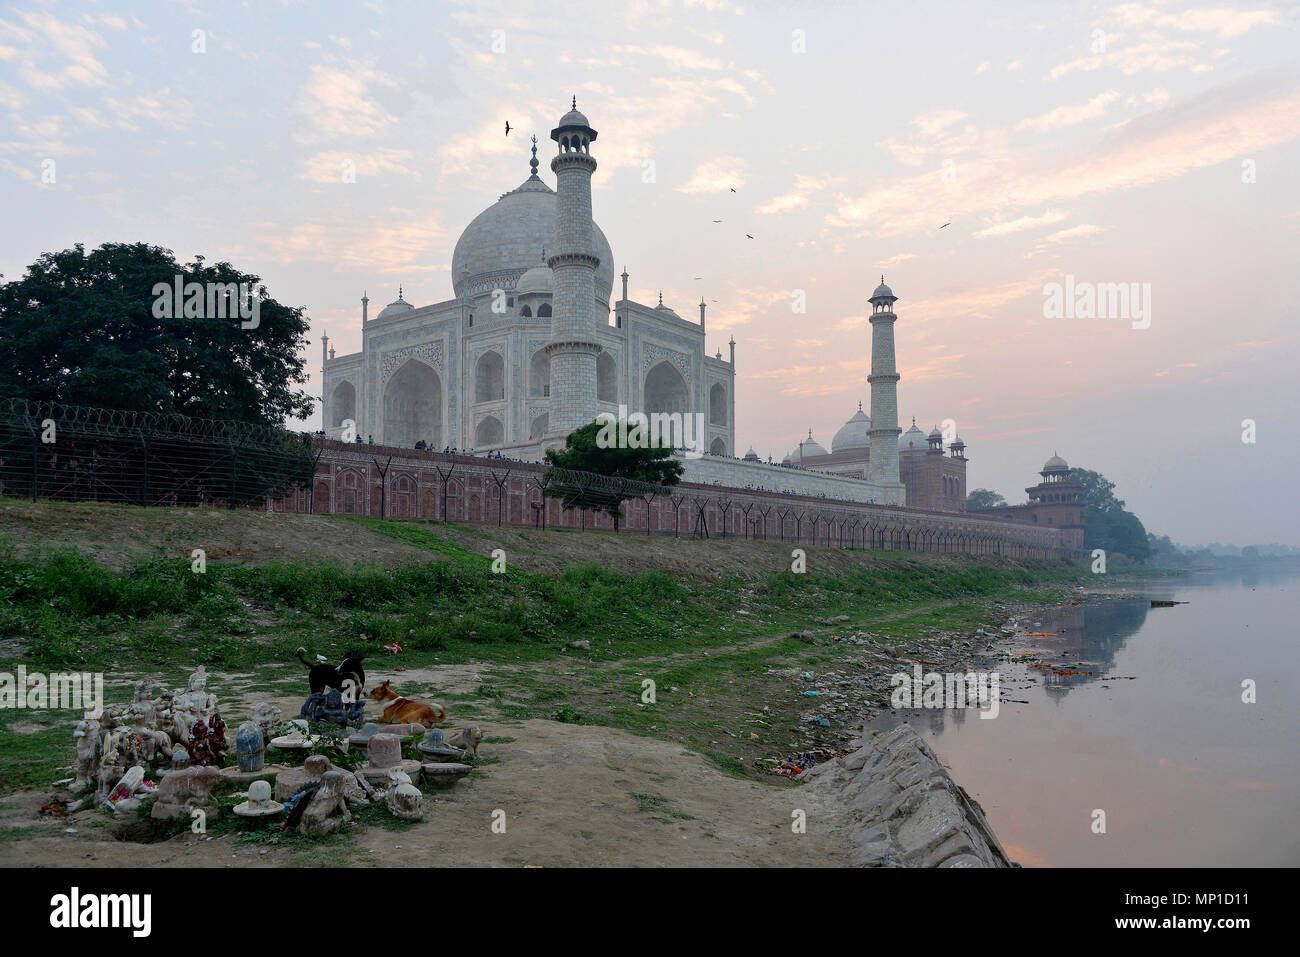 View of the Taj Mahal from the northeast, offerings on the bank of the Yamuna River, Āgra, Uttar Pradesh, India - Stock Image